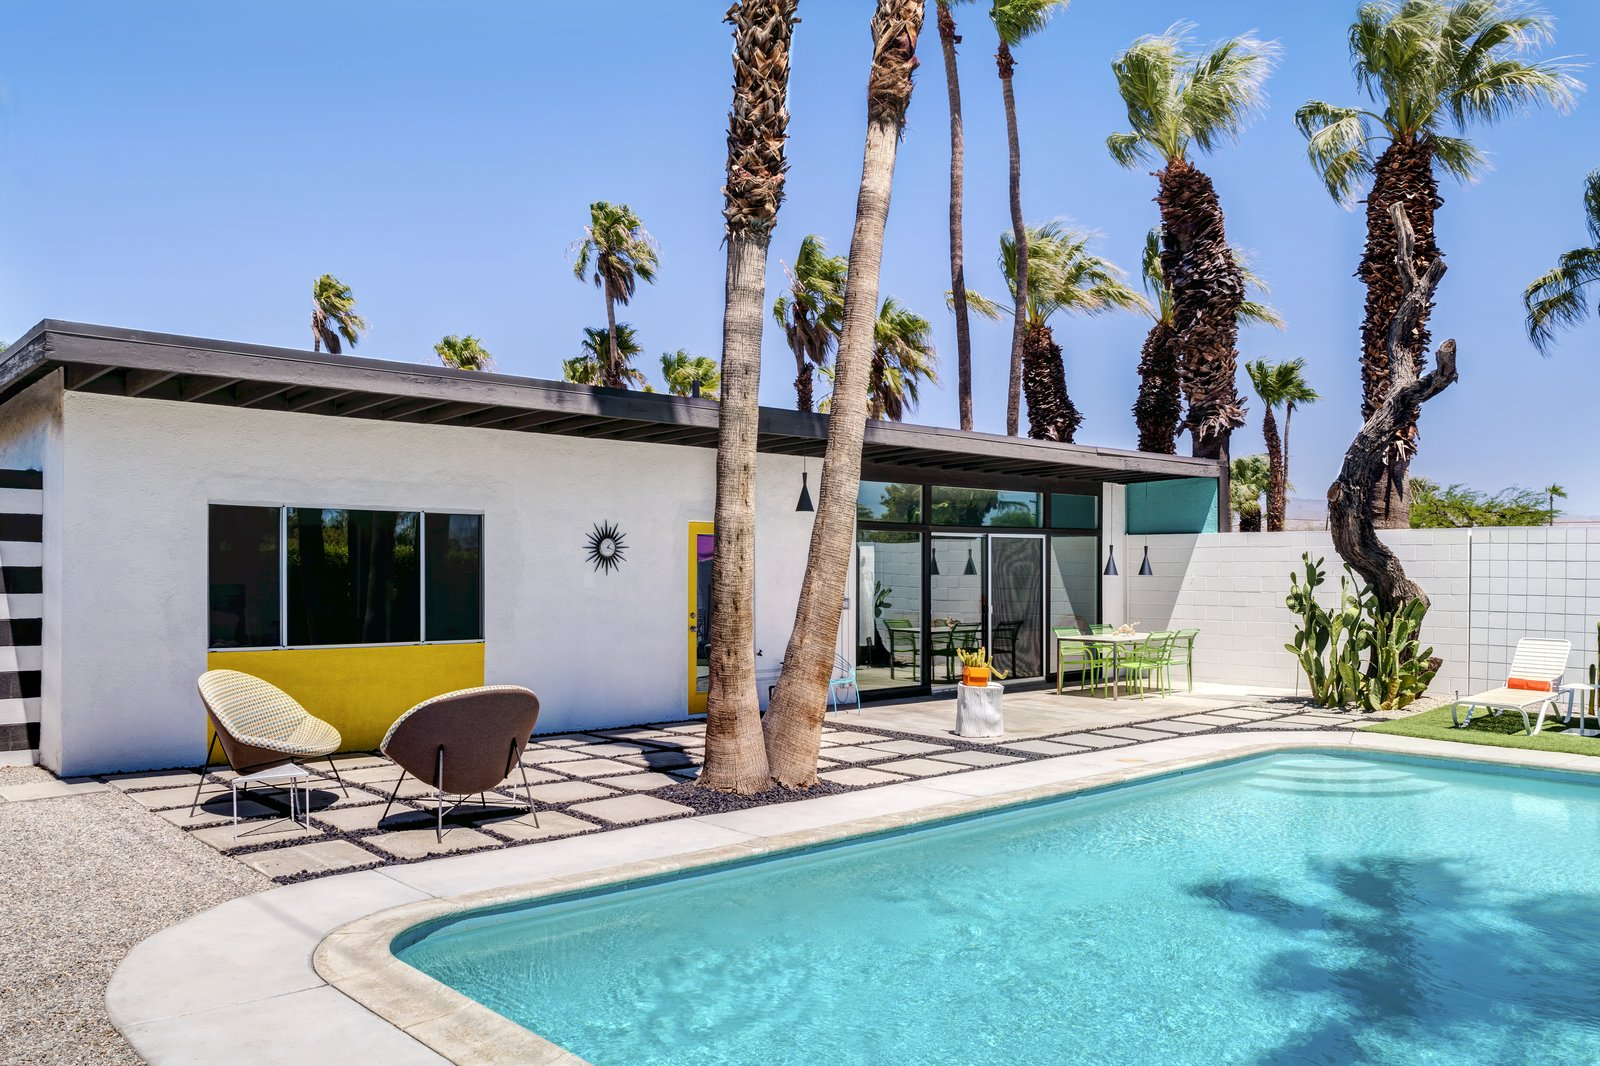 Outdoor, Swimming Pools, Tubs, Shower, Walkways, Hardscapes, Concrete Patio, Porch, Deck, and Large Pools, Tubs, Shower  Photo 10 of 11 in A Donald Wexler-Designed Midcentury Home in Palm Springs Asks $599K